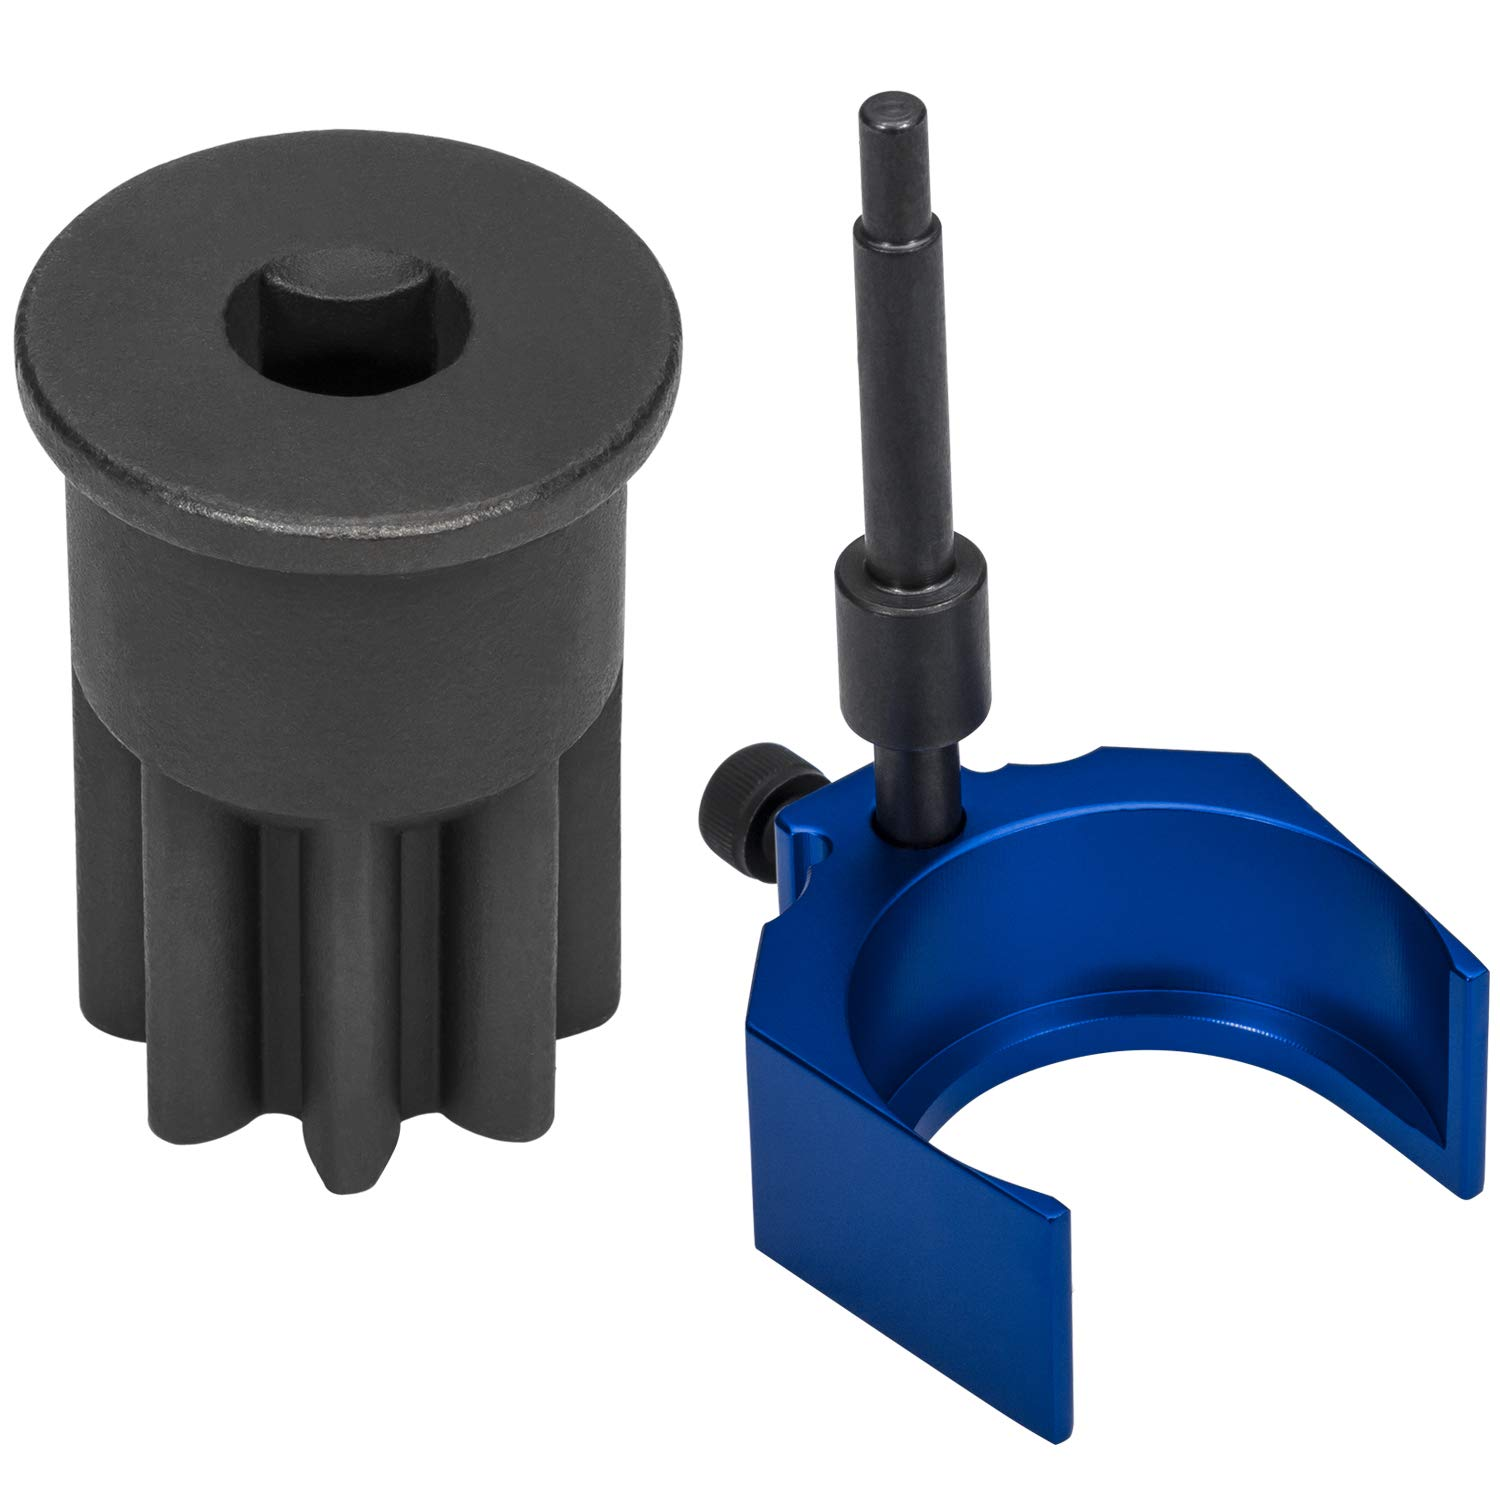 Injector Height Tool for Caterpiller 3406E, C-15 and C-16, Alternative to 9U-7227 and Engine Barring Socket for Caterpillar 3200/3406 Series & Mack E-7, E7 ETEC, Similar to J-38587-A